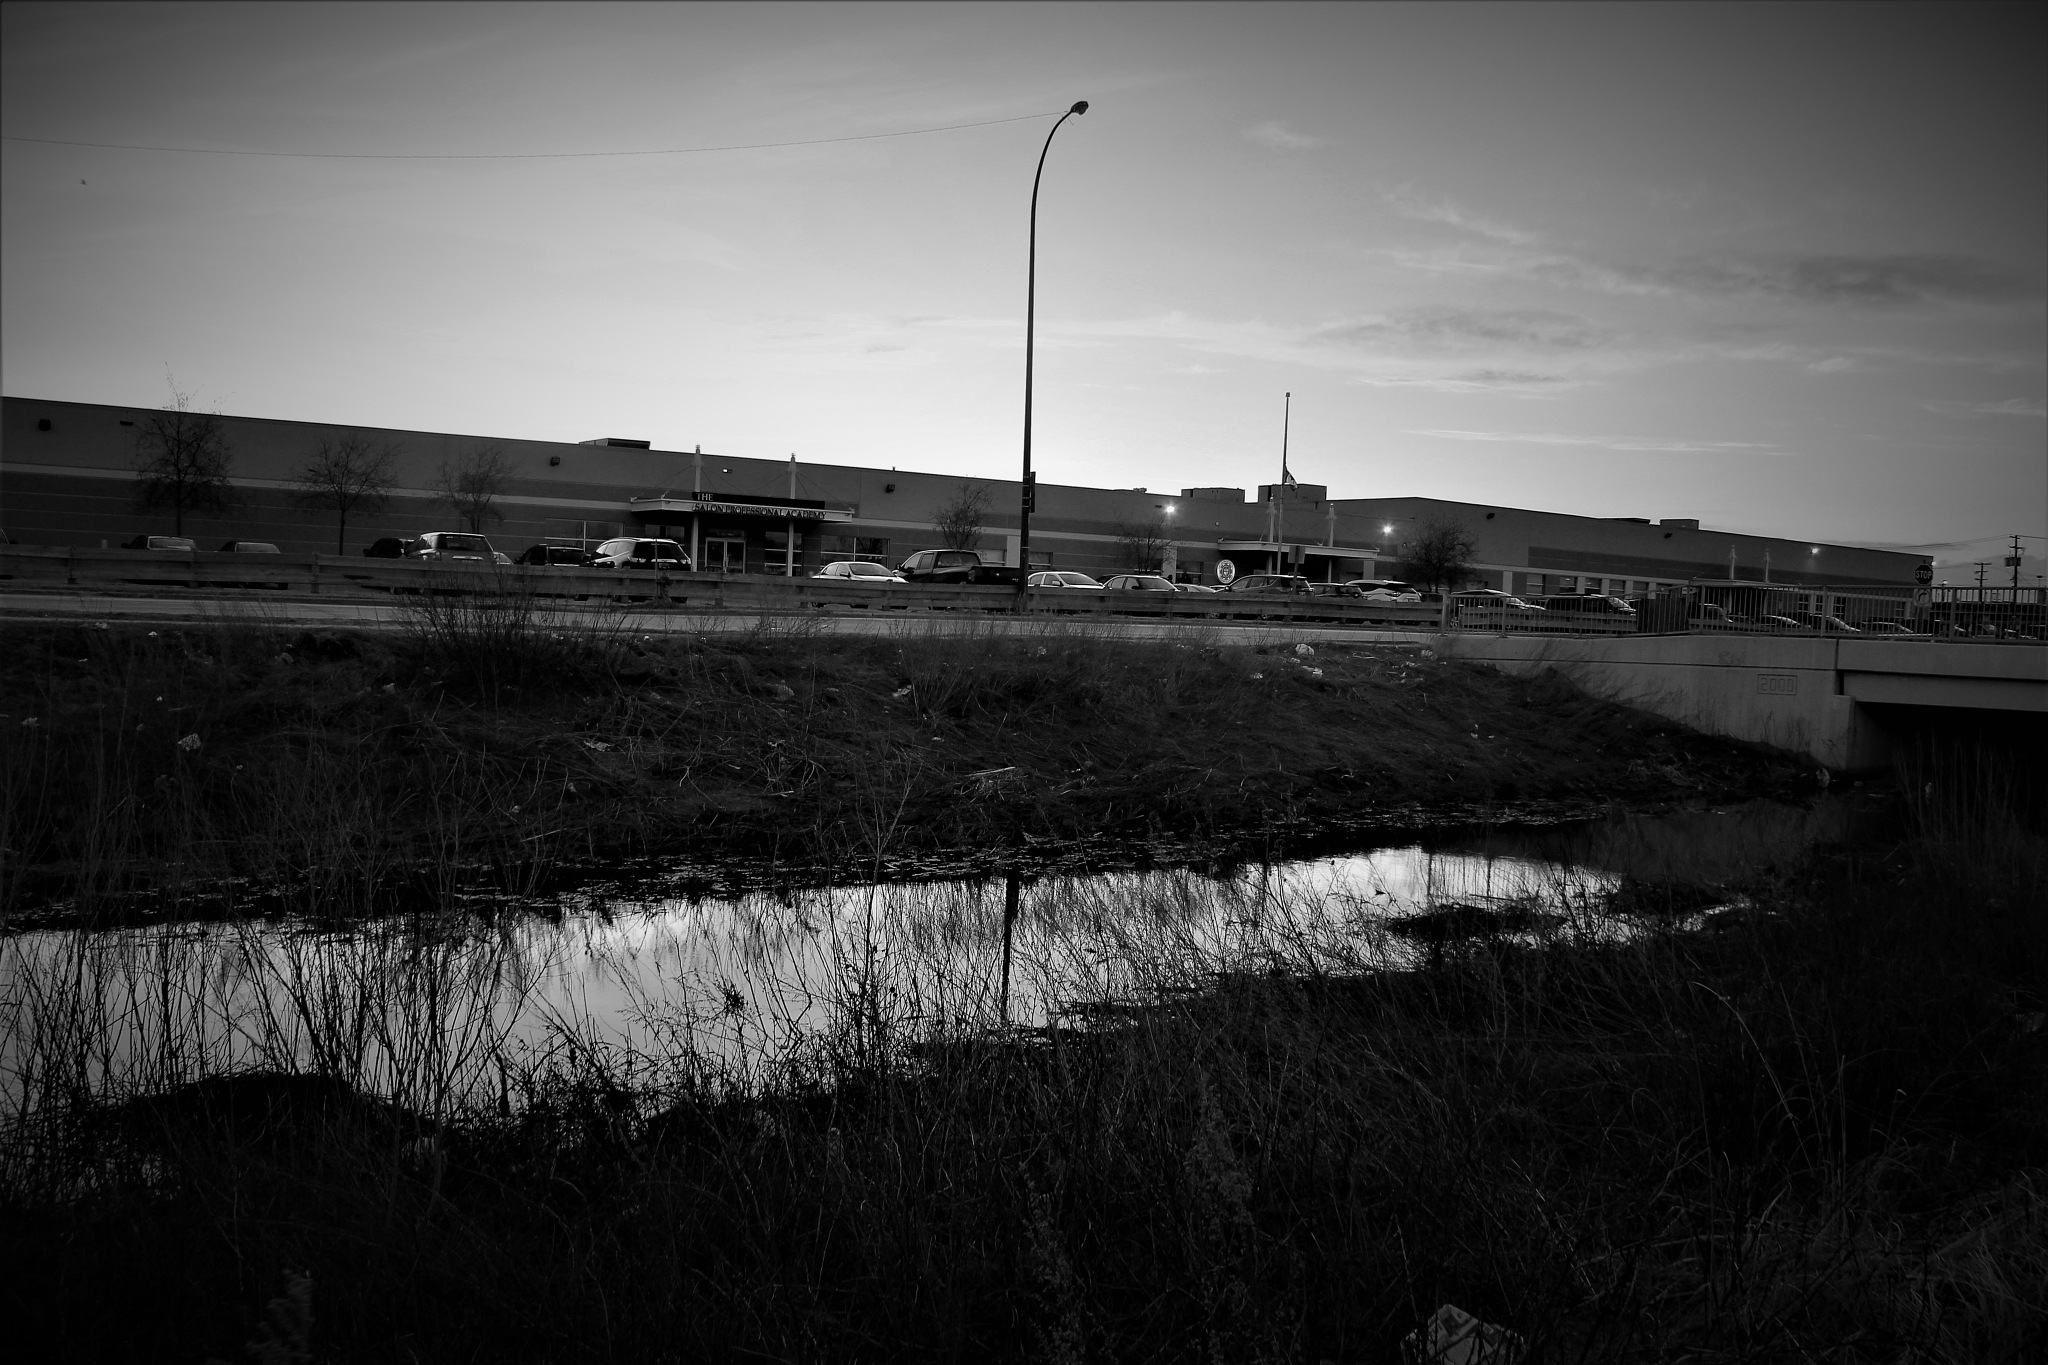 Waterway and Warehouses by David Imrie